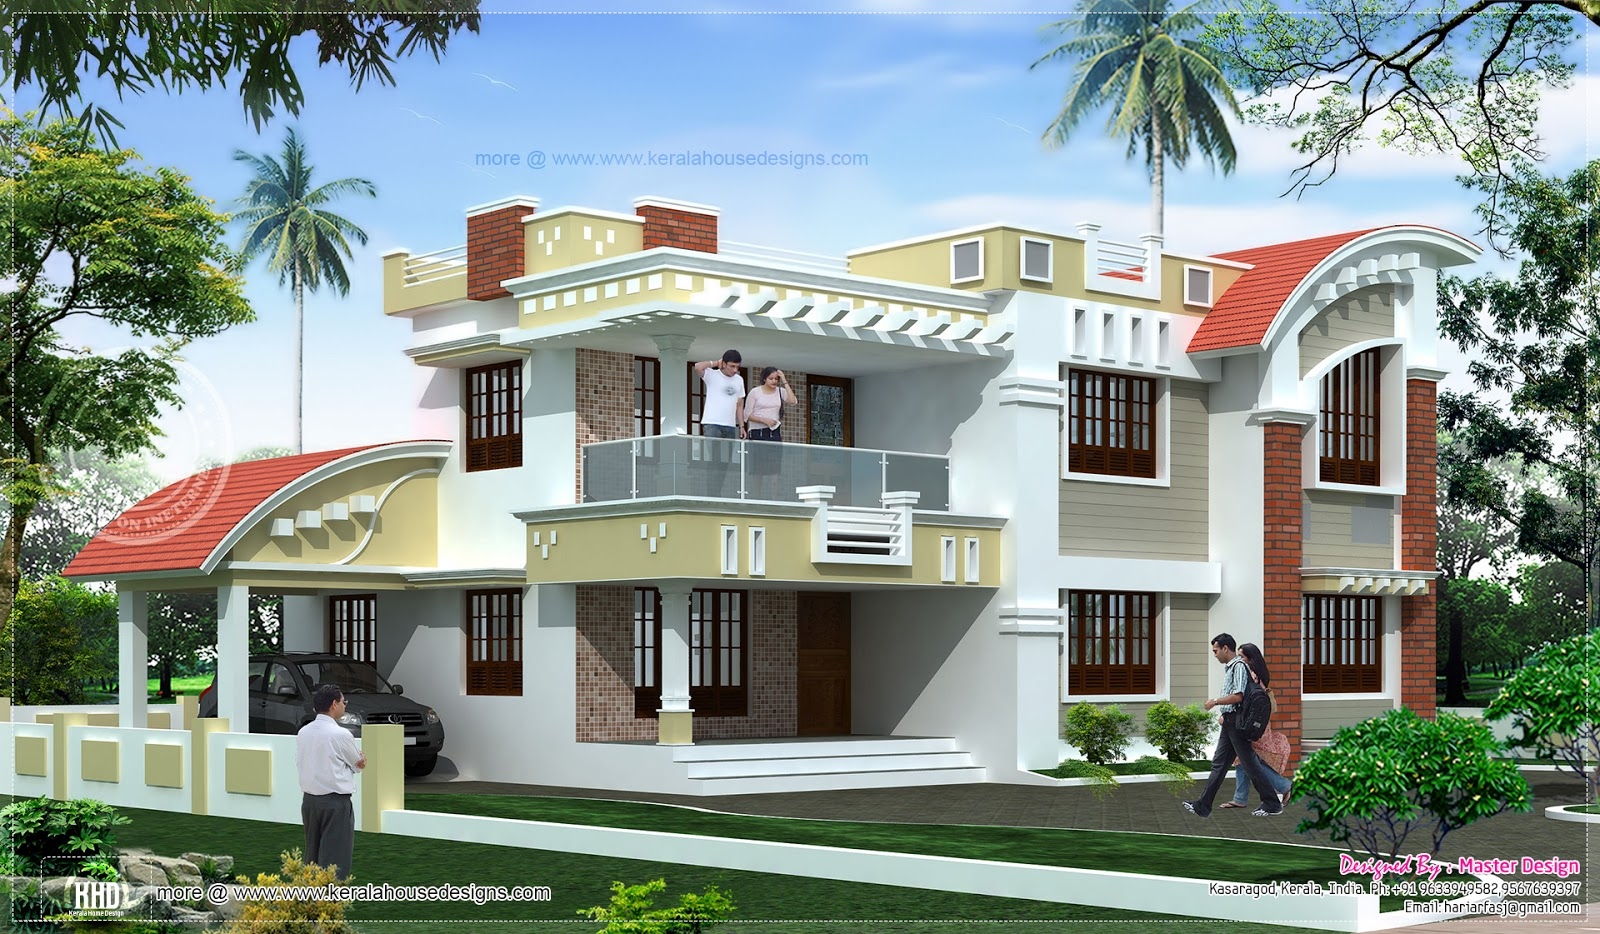 A mixed style kerala villa elevation with curved roofs for Home plans designs kerala